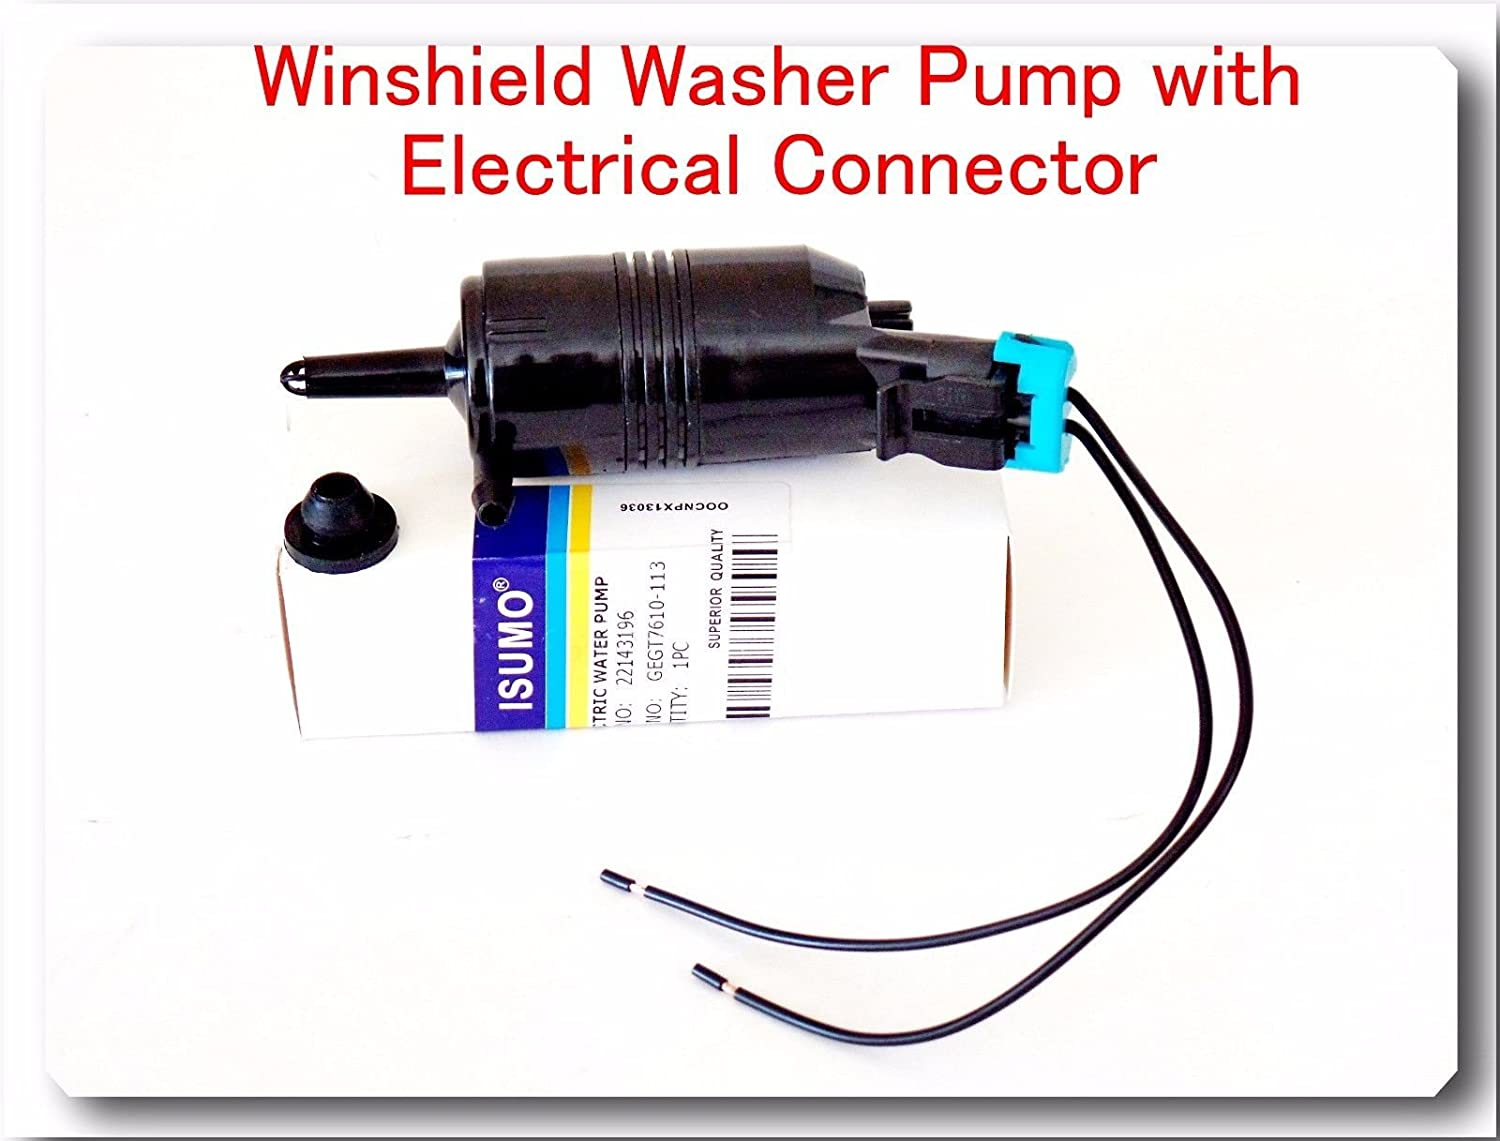 FIts:GMC YUKON 1992-2006 YUKON XL 1500 2000-2006 YUKON XL 2500 2000-2006 SATURN OUTLOOK 2007-2010 22143196 Windshield Washer Pump With Electrical Connector Pigtail